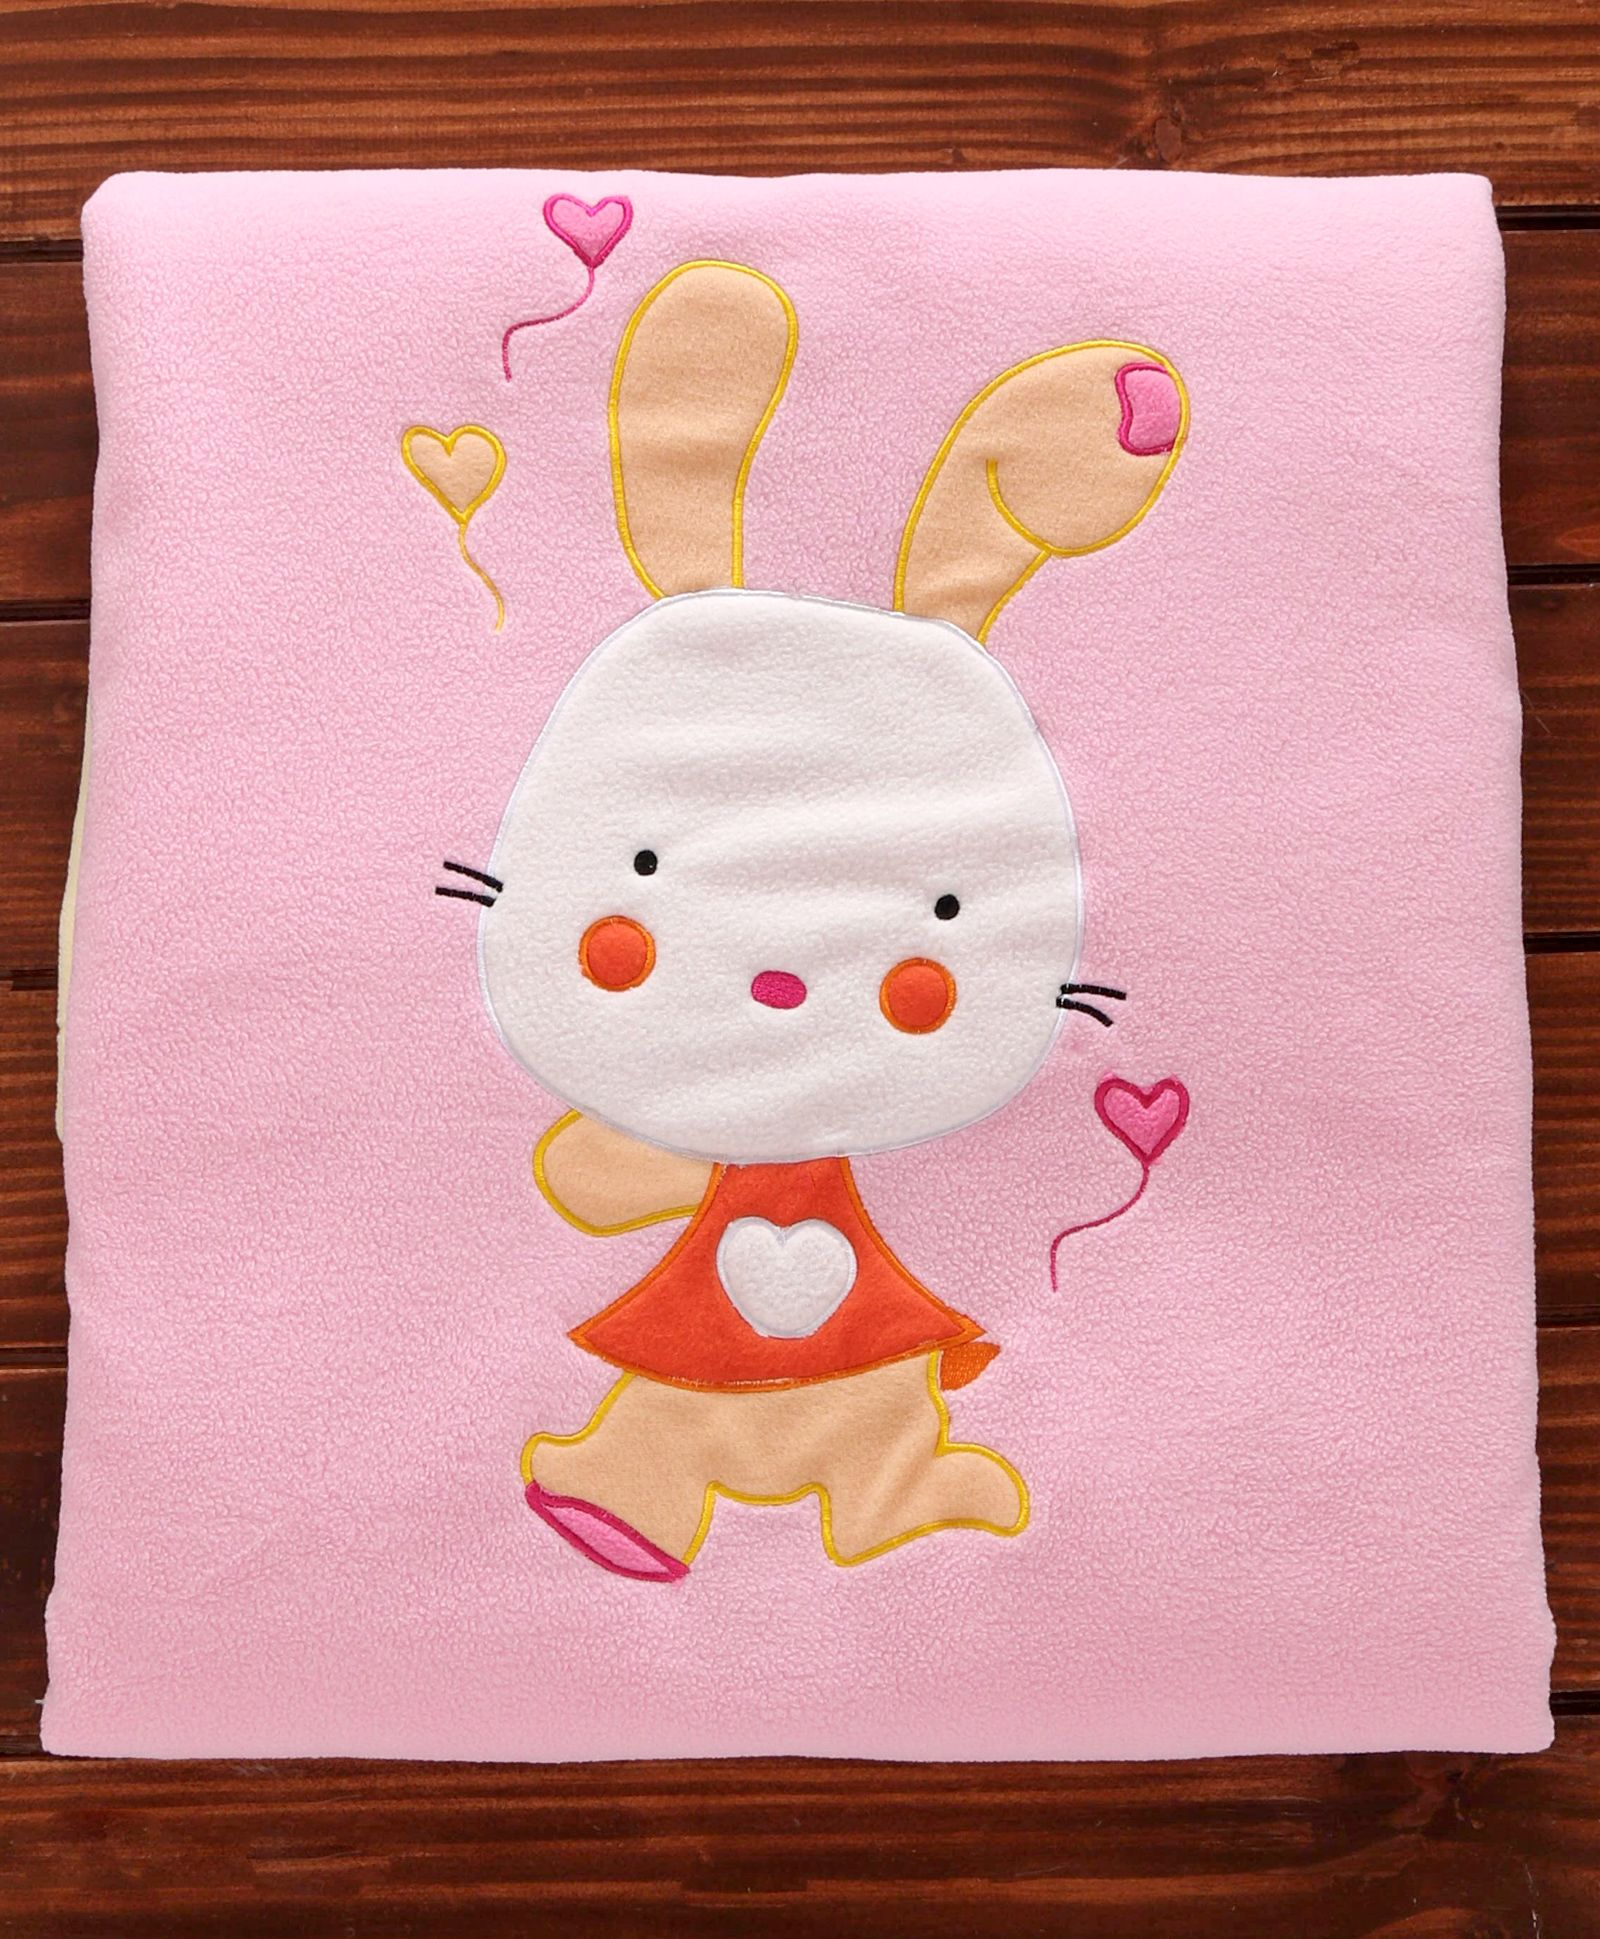 Polyester Baby Blanket Bunny Print Pink Yellow Online In India Buy At Best Price From Firstcry Com 2956772